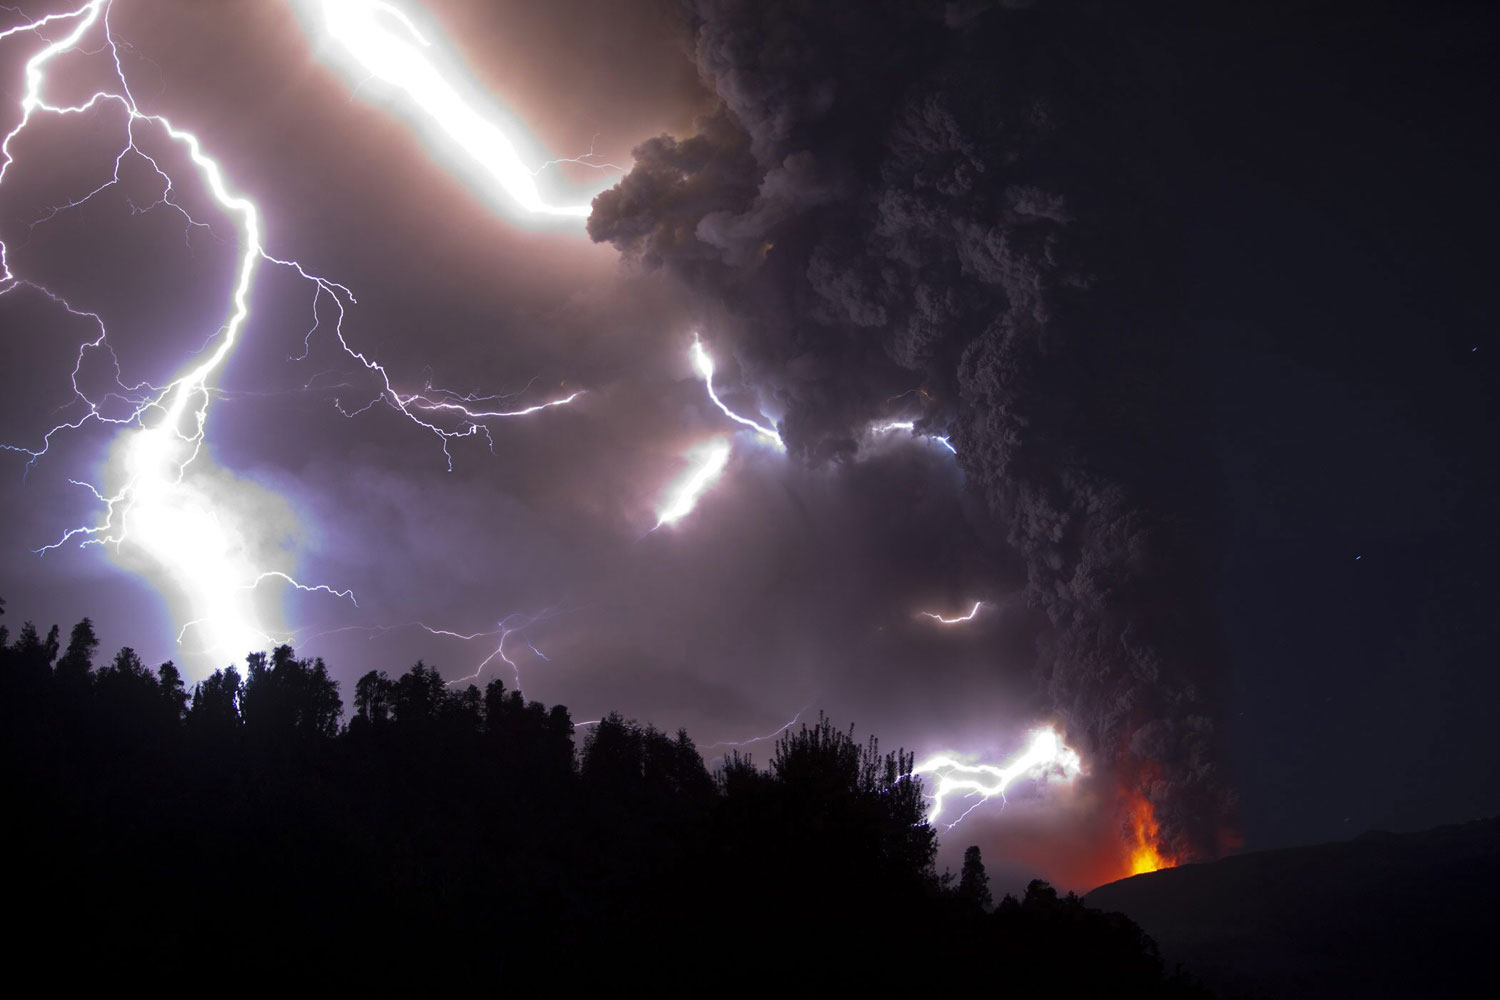 Ash billowing from Puyehue volcano as lightening strikes in southern Chile on June 5, 2011.